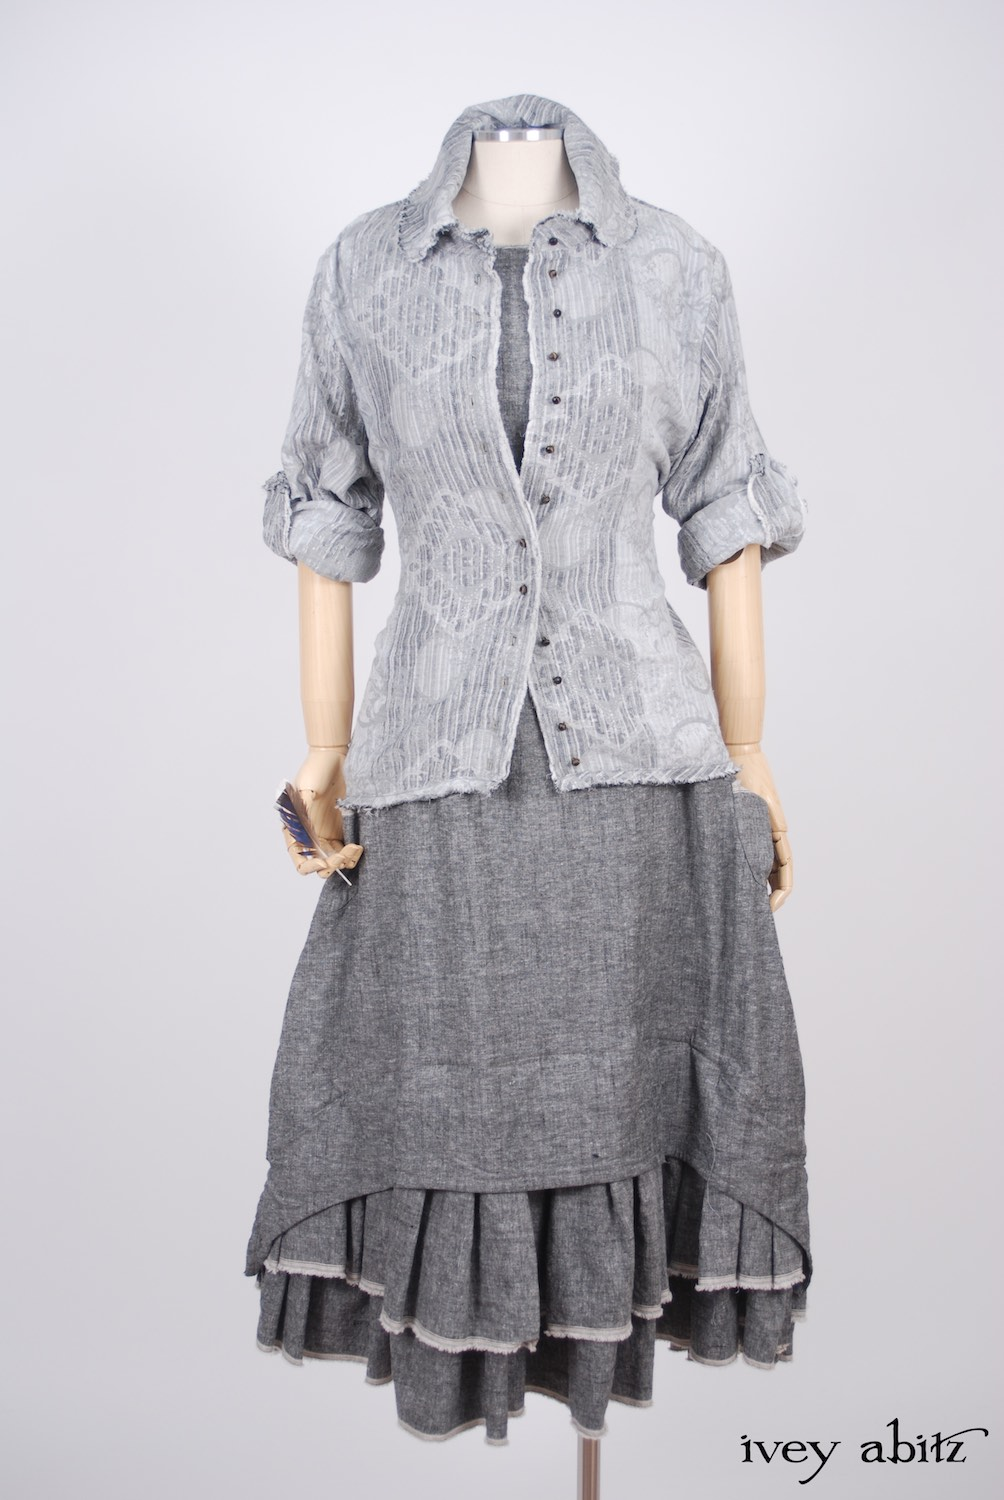 Ivey Abitz - Sollie Shirt in Sparrow Grey Jacquard  - Limited Edition Trelawny Frock in Blackbird/Dove Rustic Weave, High Water Length